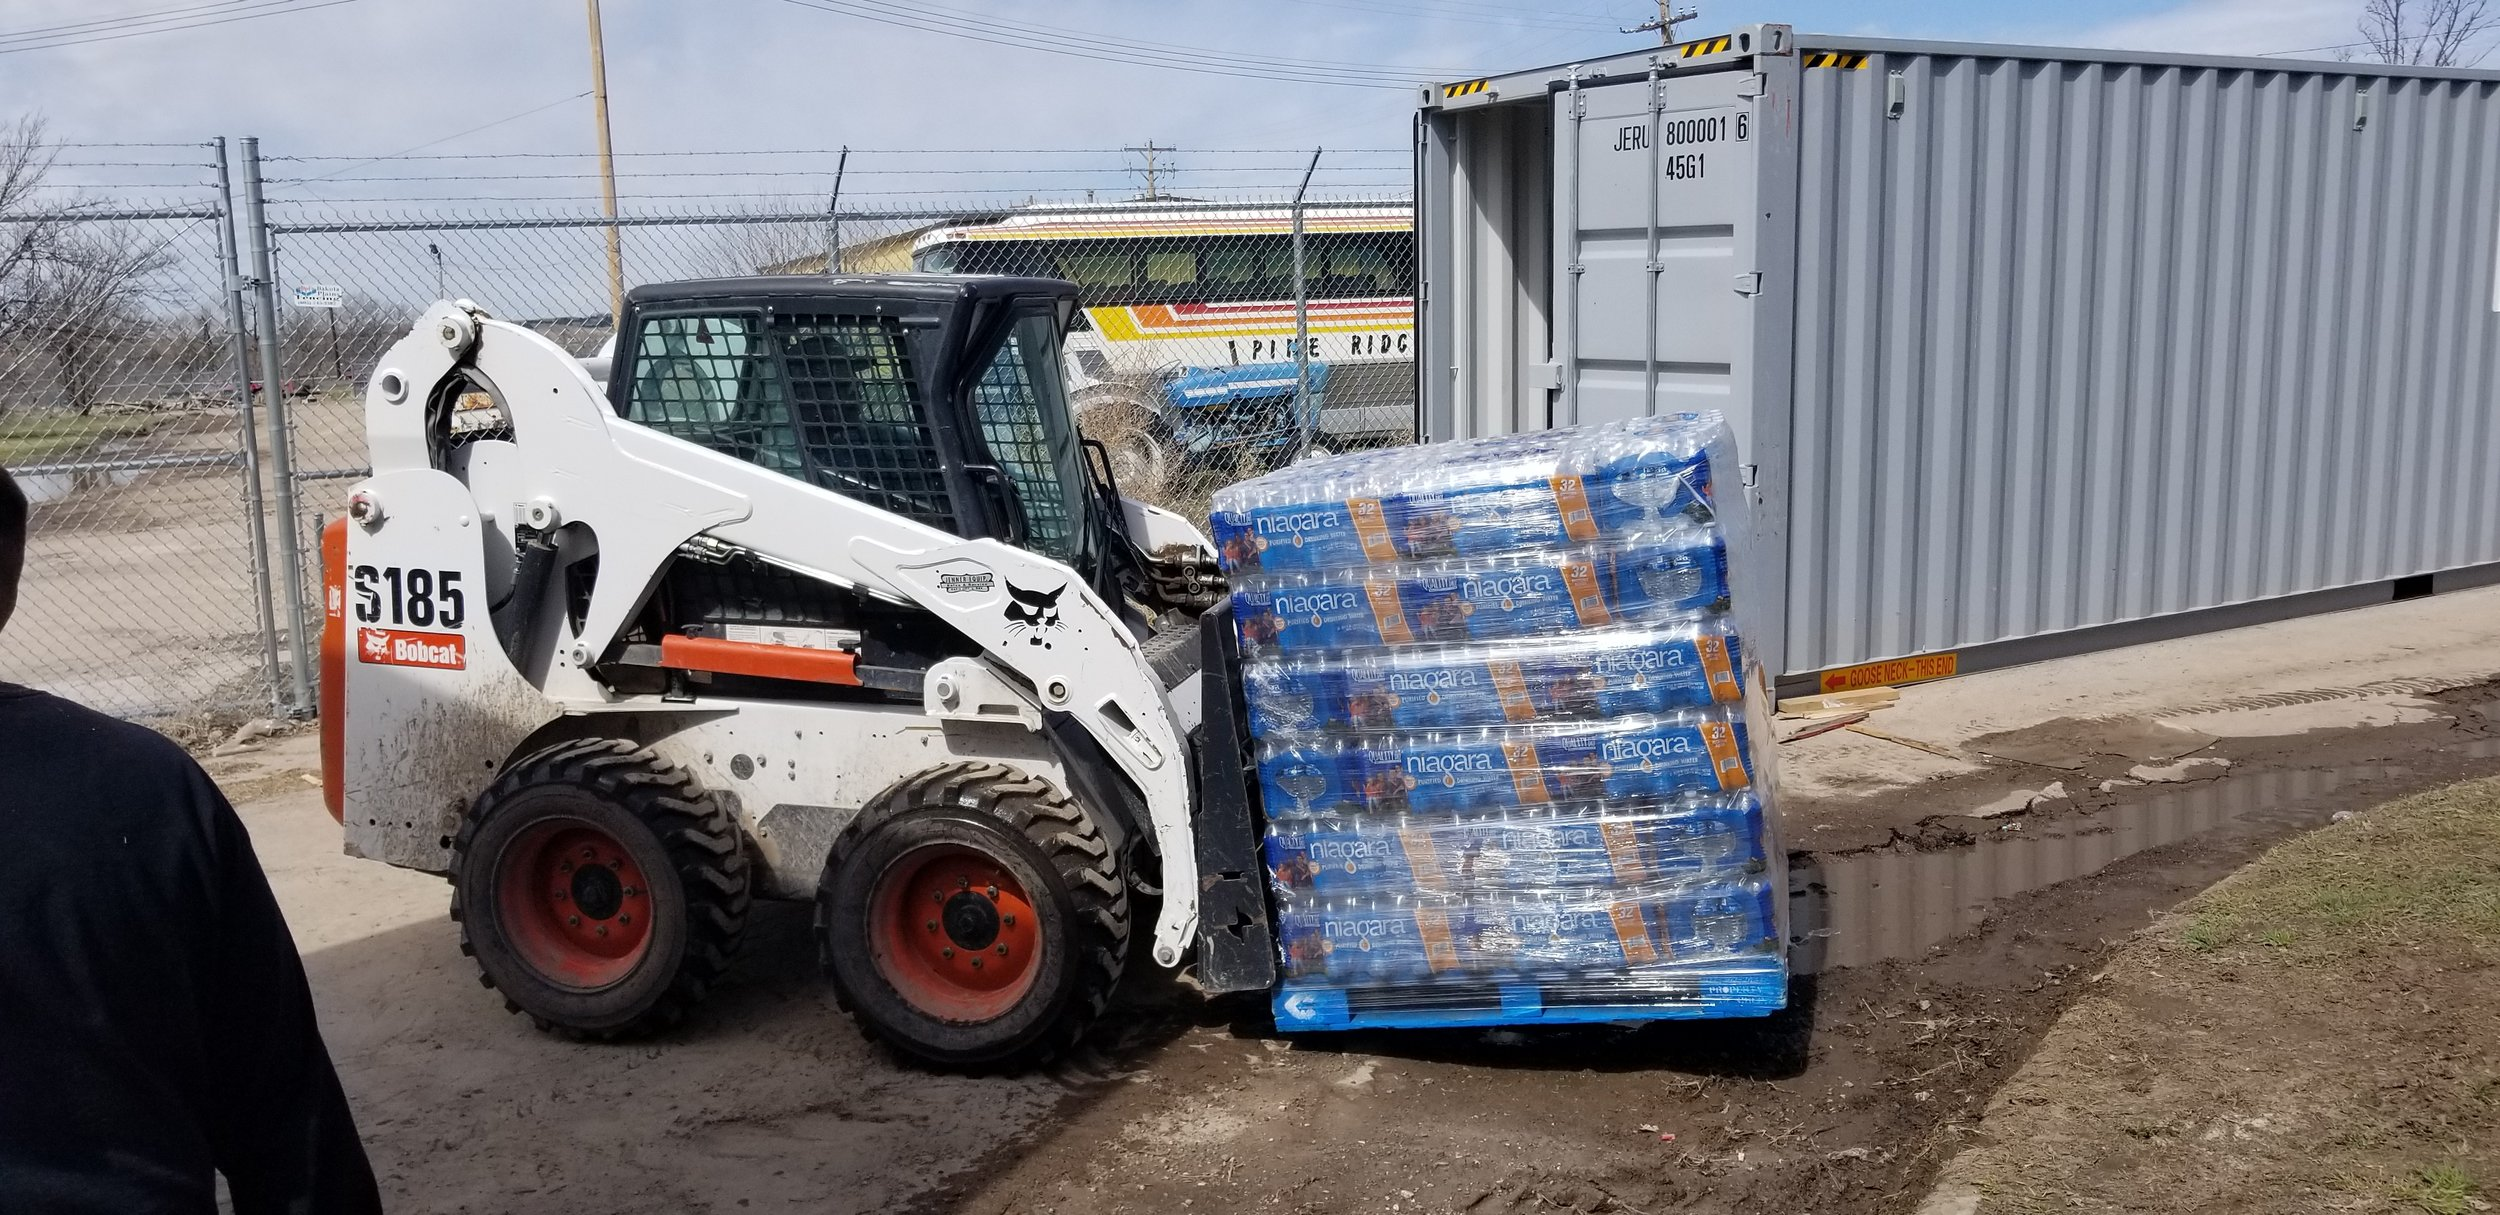 We work with outside organizations to supply water to disaster recovery relief agencies on the reservation